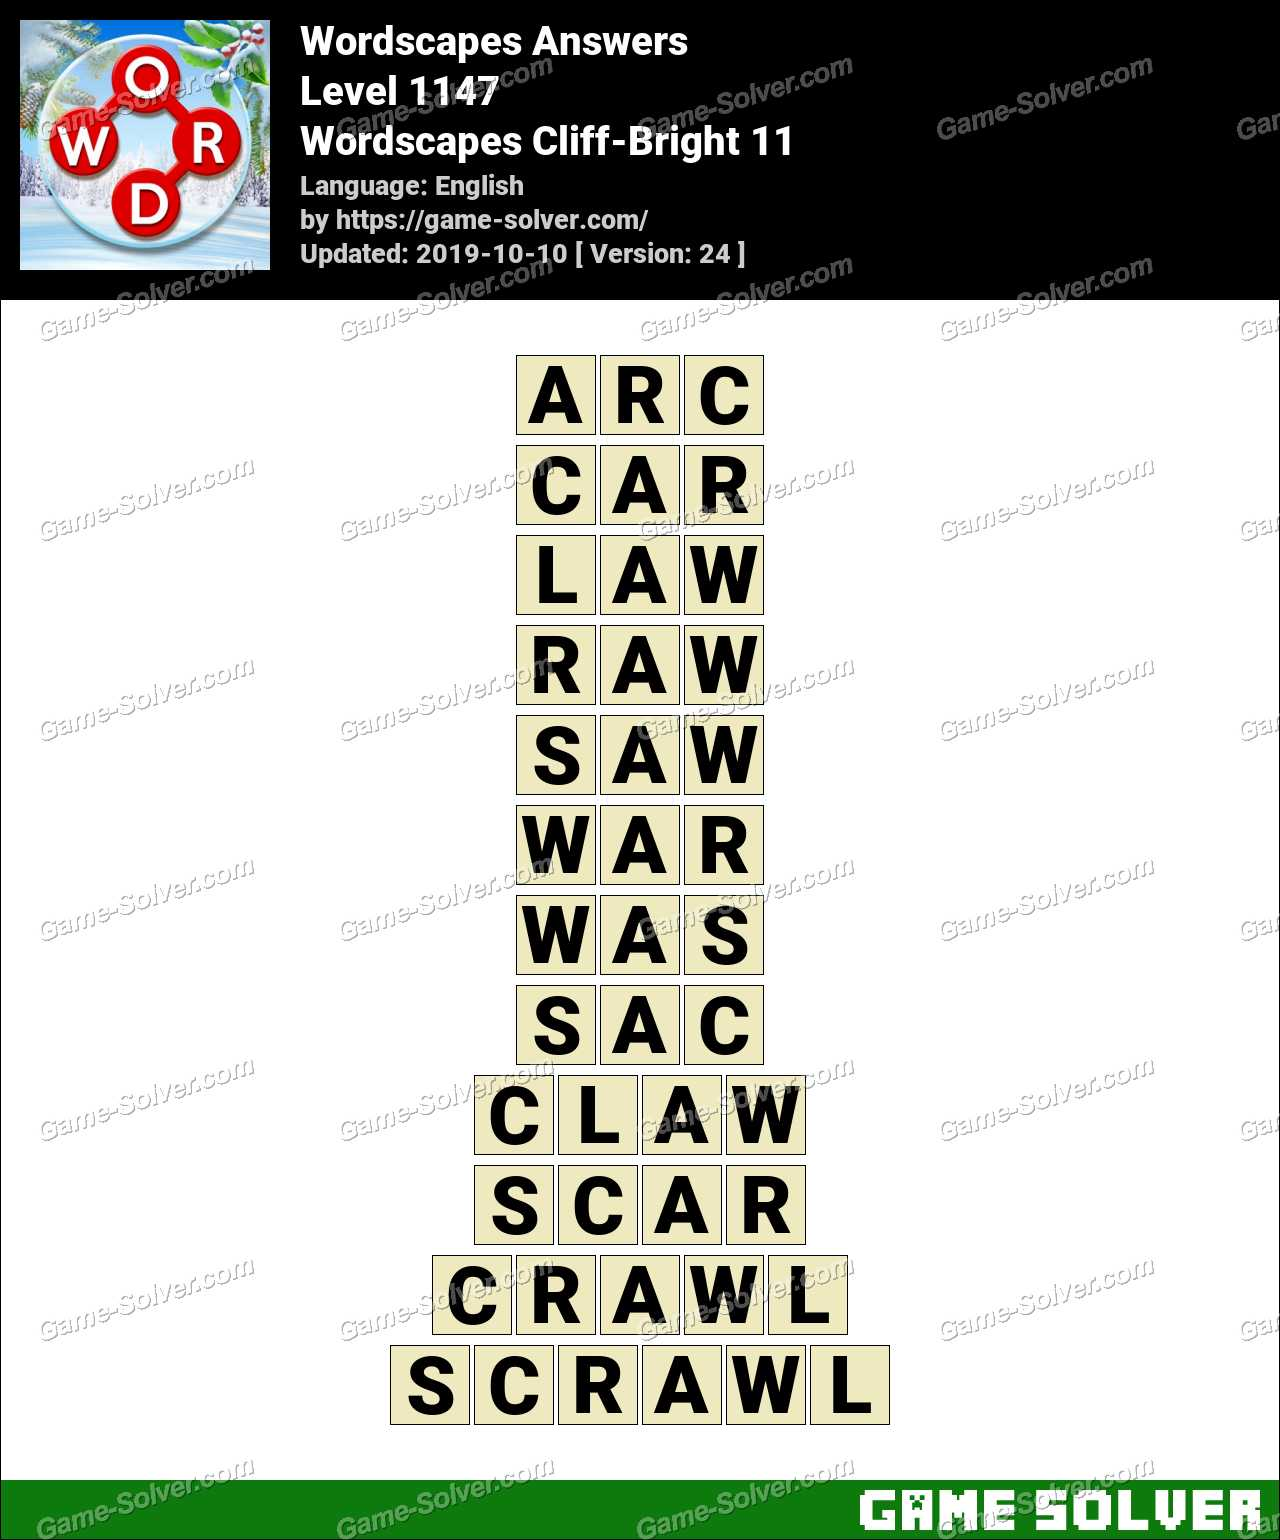 Wordscapes Cliff-Bright 11 Answers